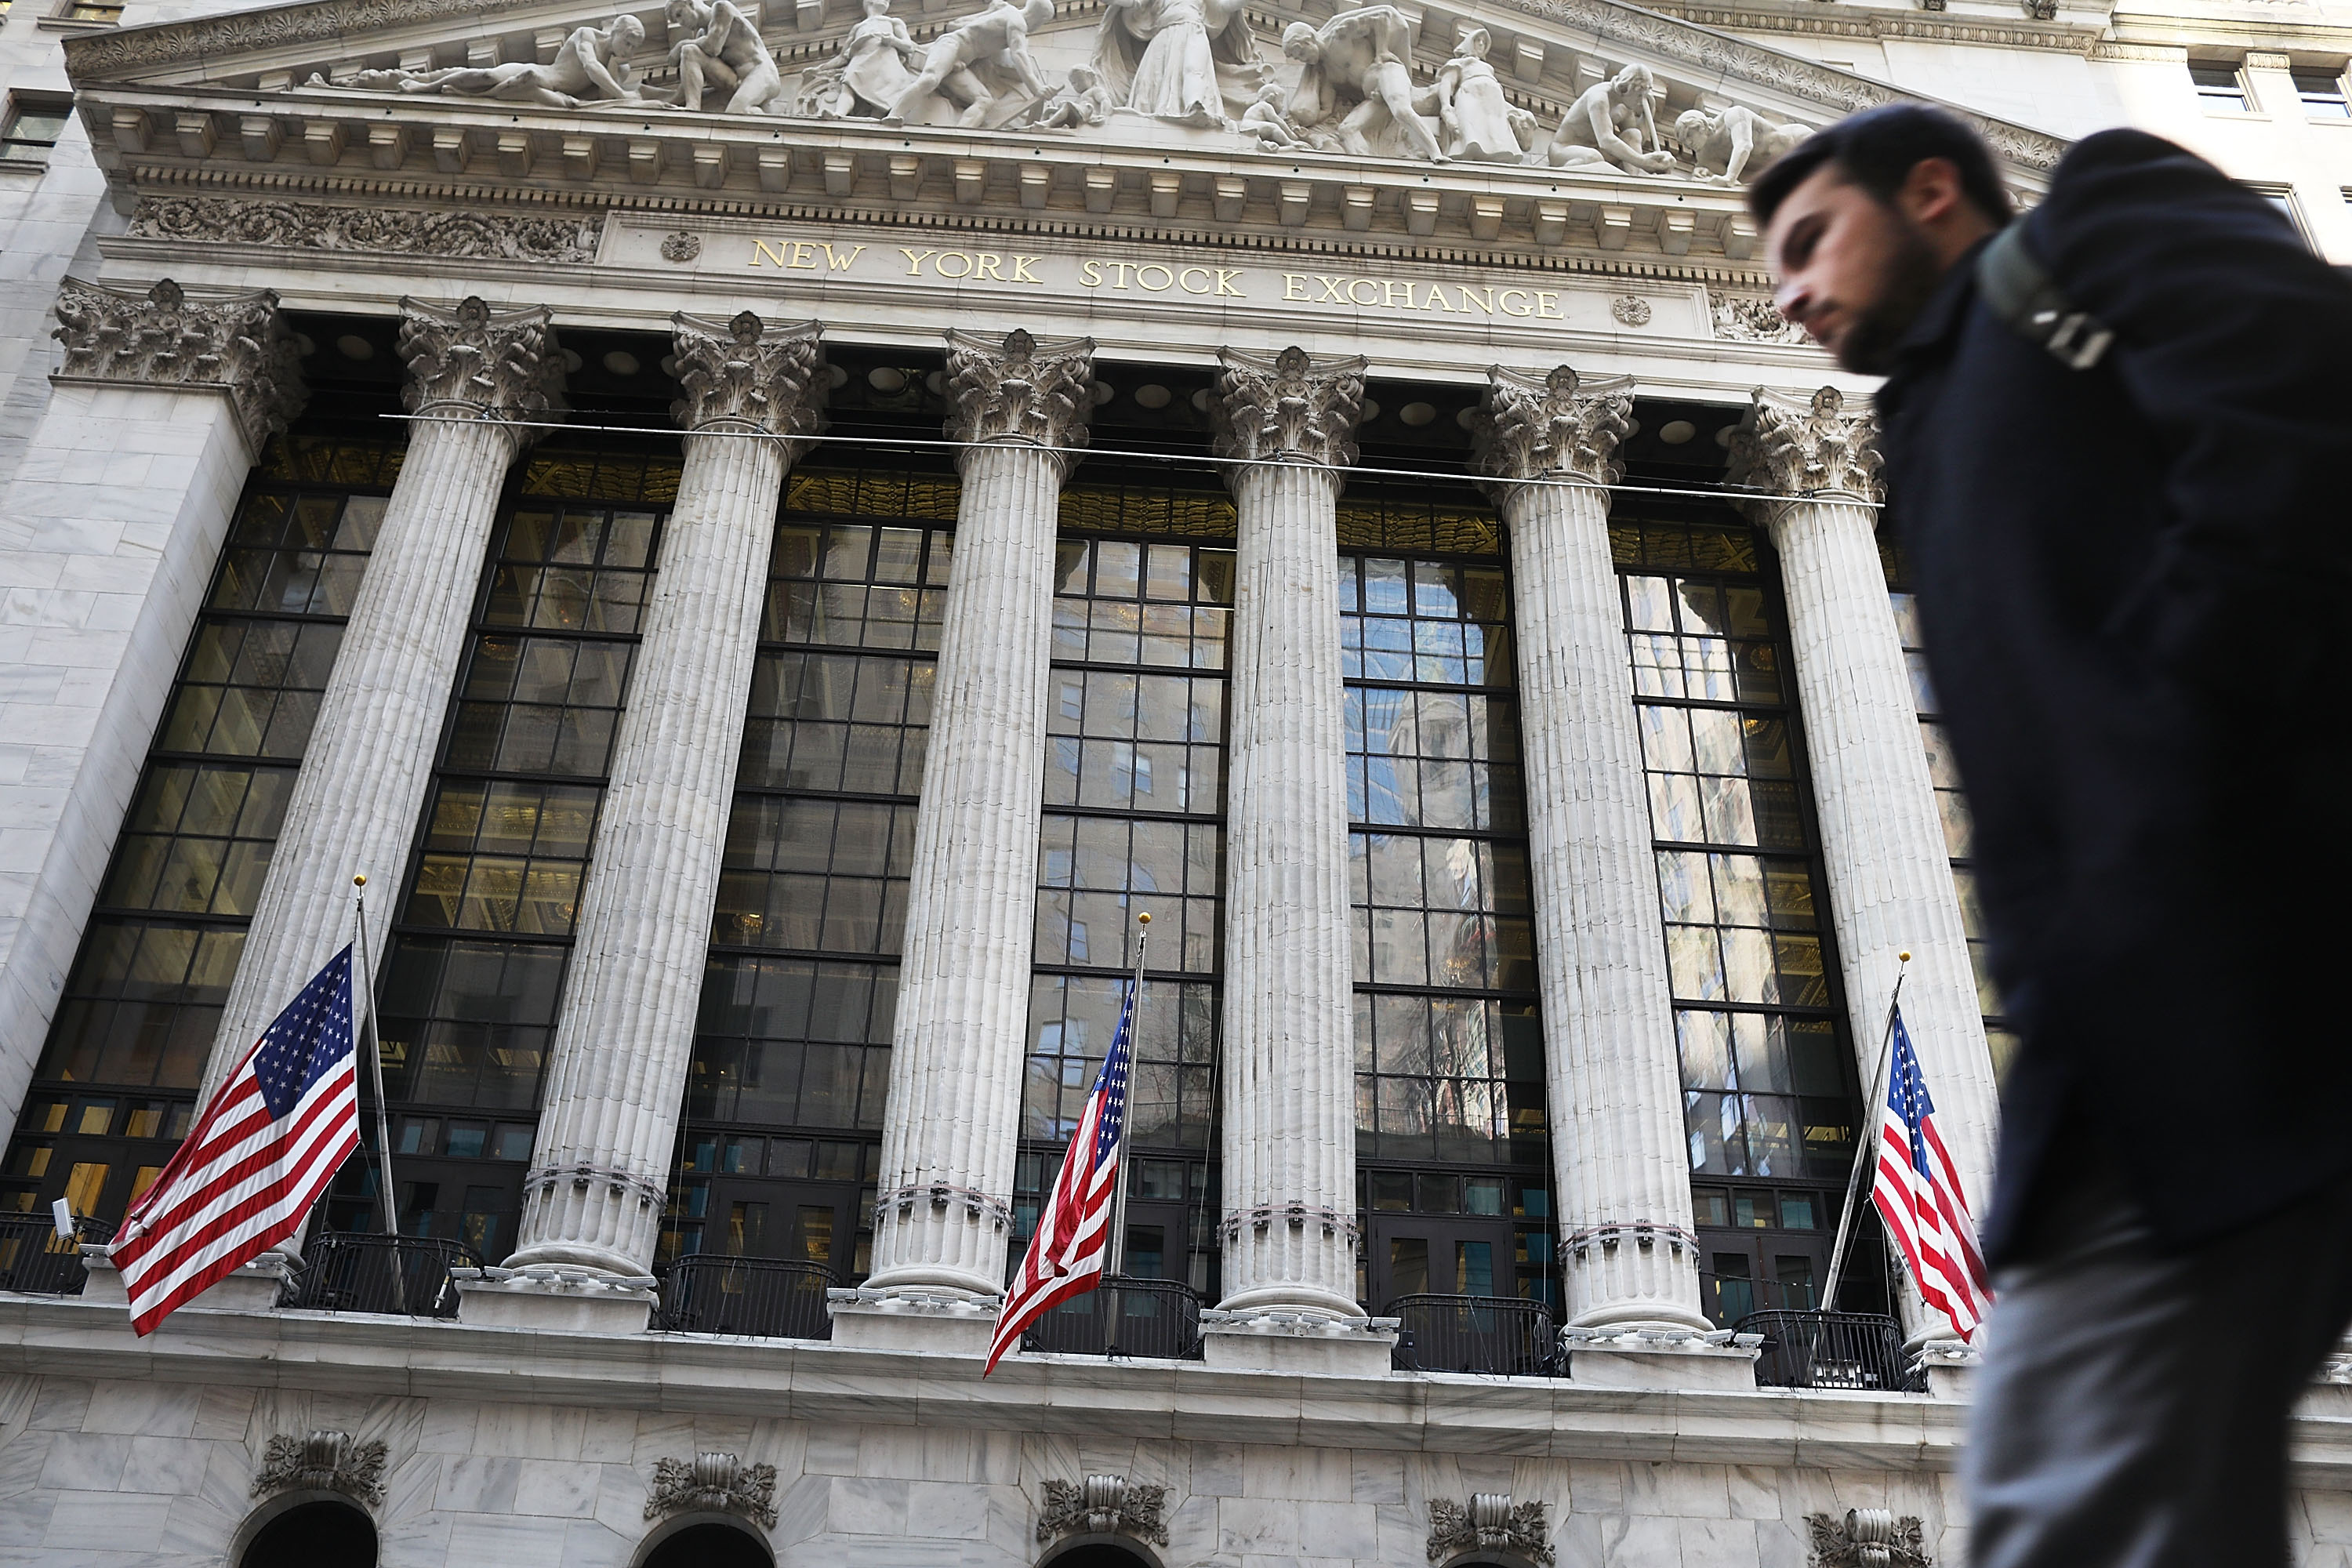 People walk by the New York Stock Exchange (NYSE) on Feb. 6, 2017 in New York City.